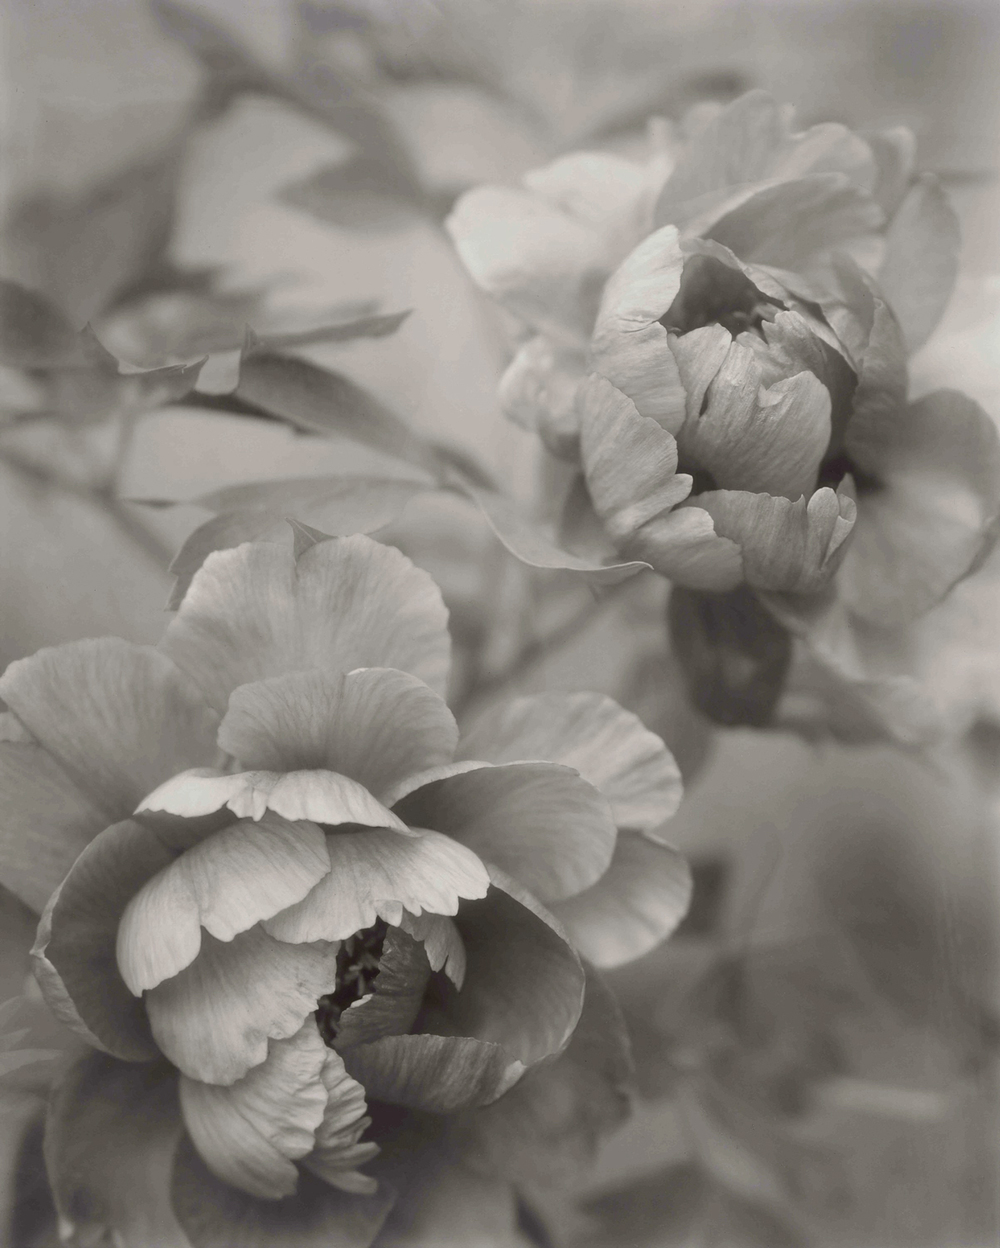 Elvira Piedra ,  Venerable Flowers   From a series of black and white images of the tree peony photographed with an 8 x 10 view camera. The photographer's negatives were drum scanned and realized as 16 x 20 inch pigment ink prints.  To see more of Elvira Piedra's work,  please click here.    Prints of Elvira Piedra's photographs are available in the  Shop .   www.elvirapiedra.com